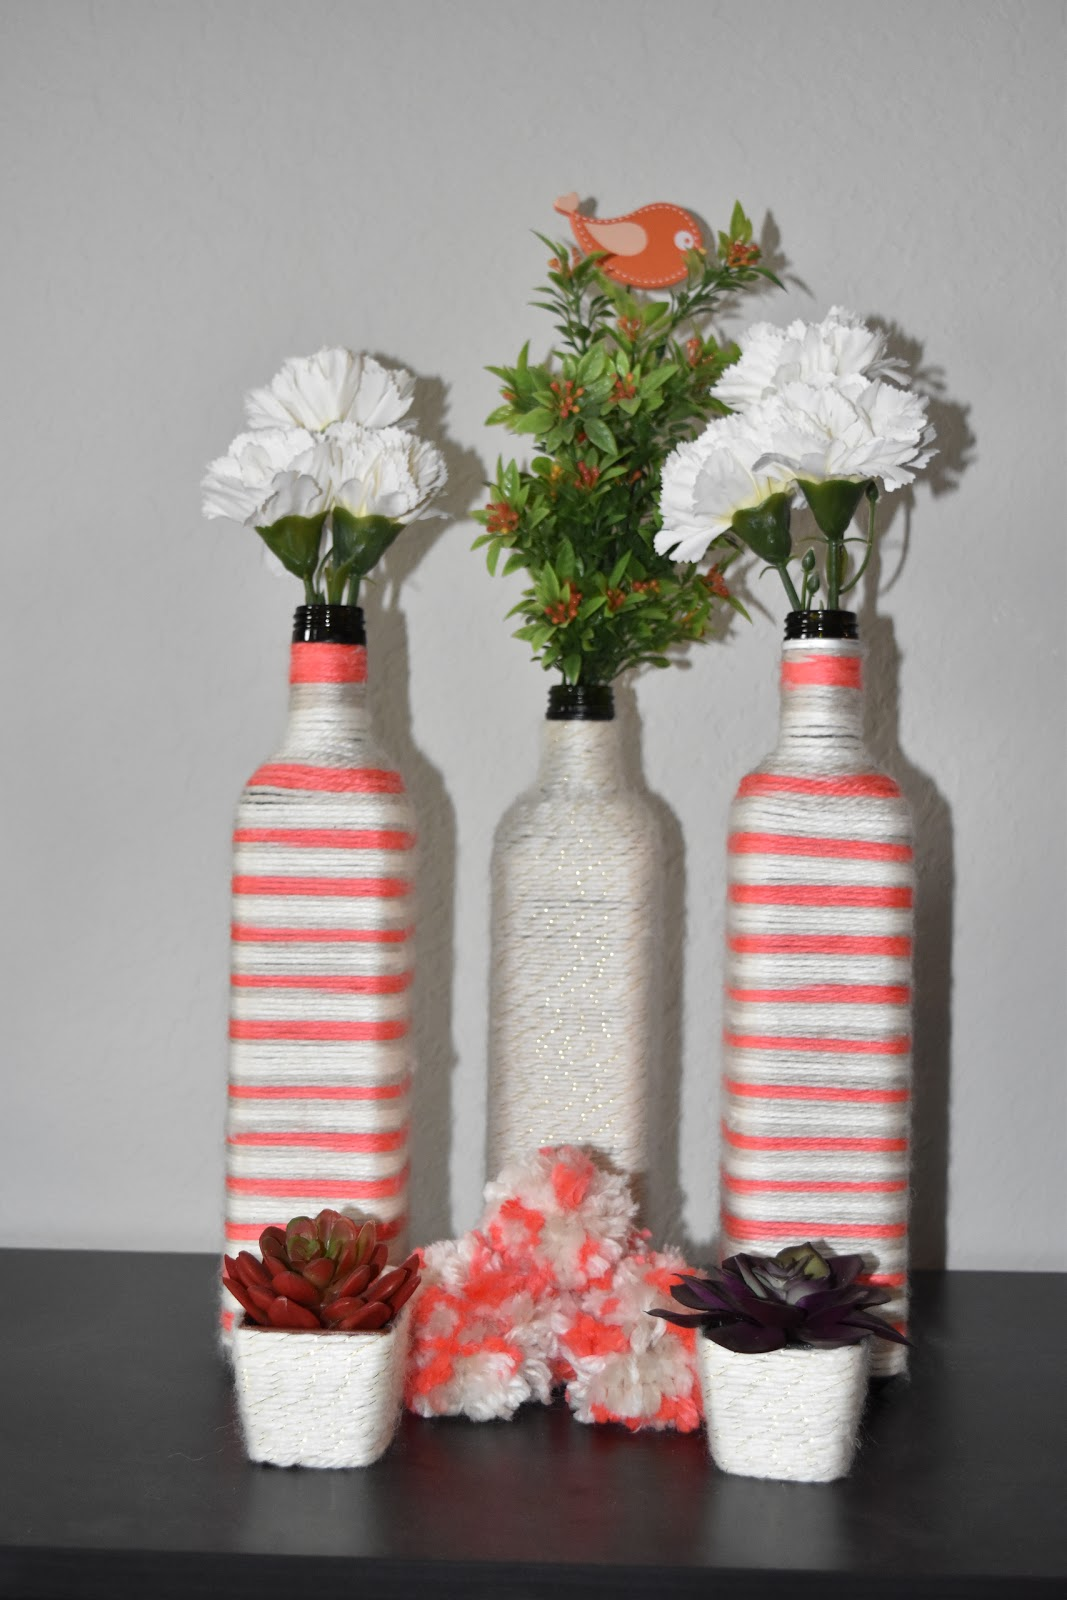 Ideas to reuse oil bottles home decor aim for glam so coming back to the blog post i am here with a new idea to decorate your rooms with an easy diy flower vase using oil bottles i love decorating my house reviewsmspy